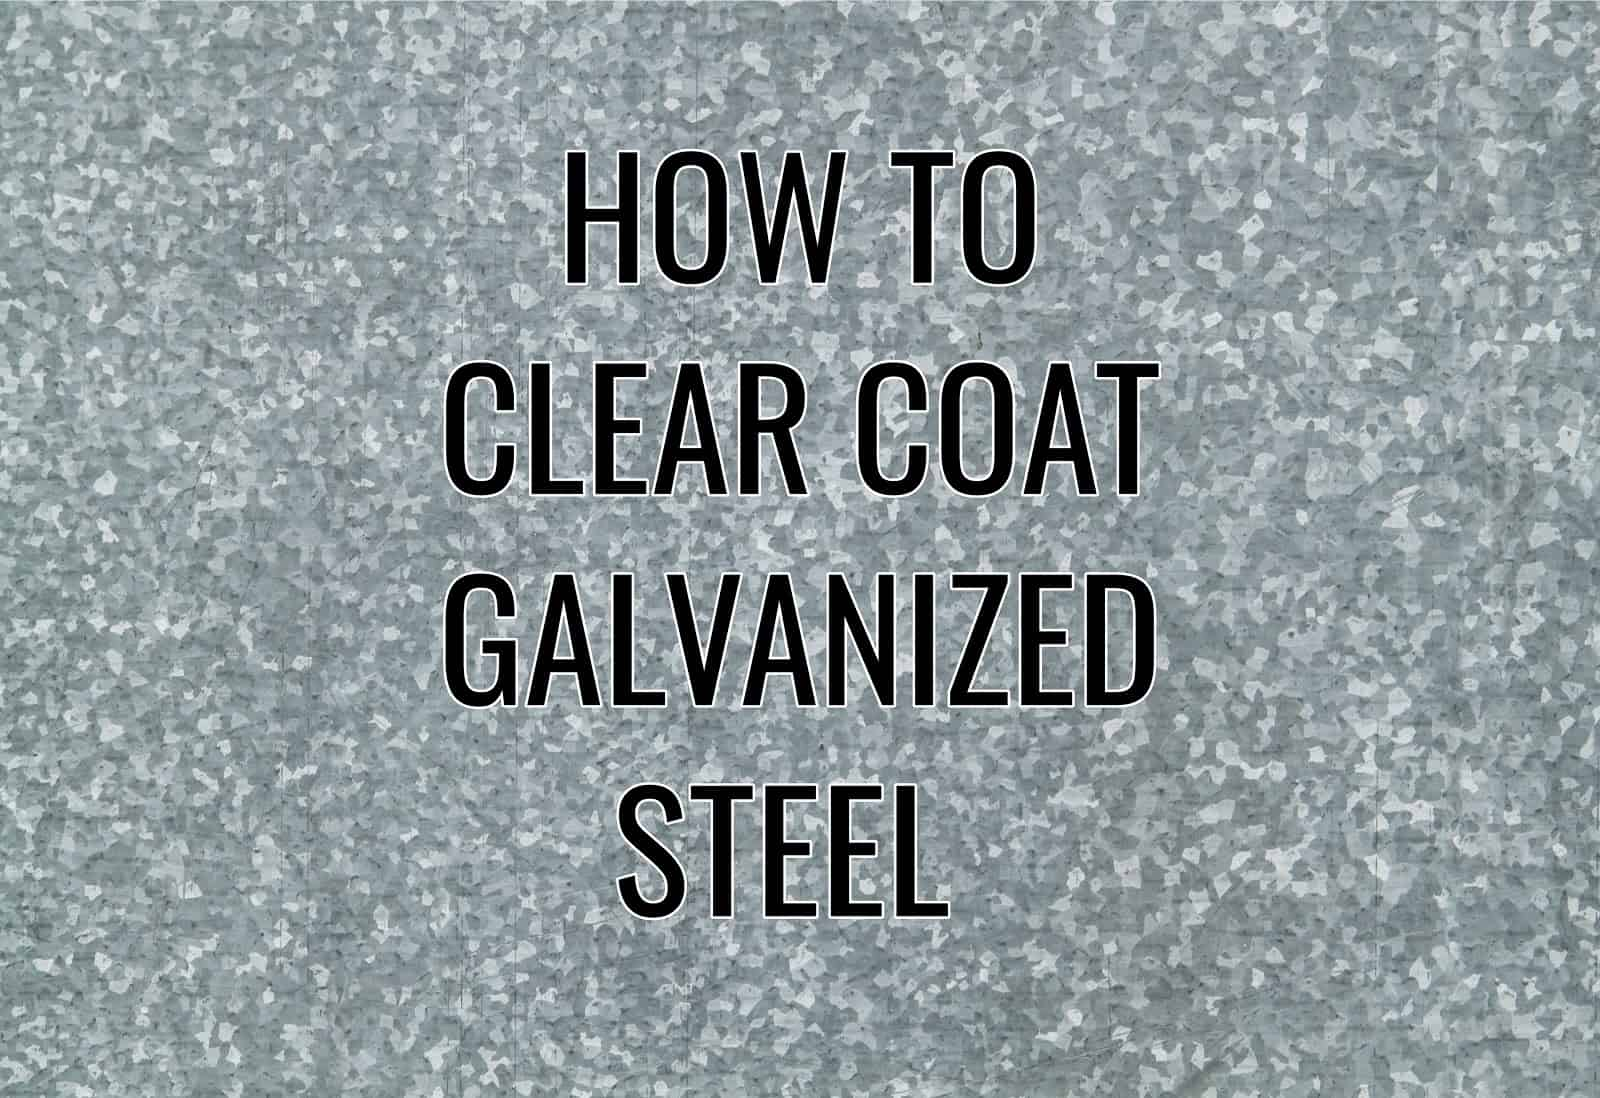 How To clear coat galvanized steel